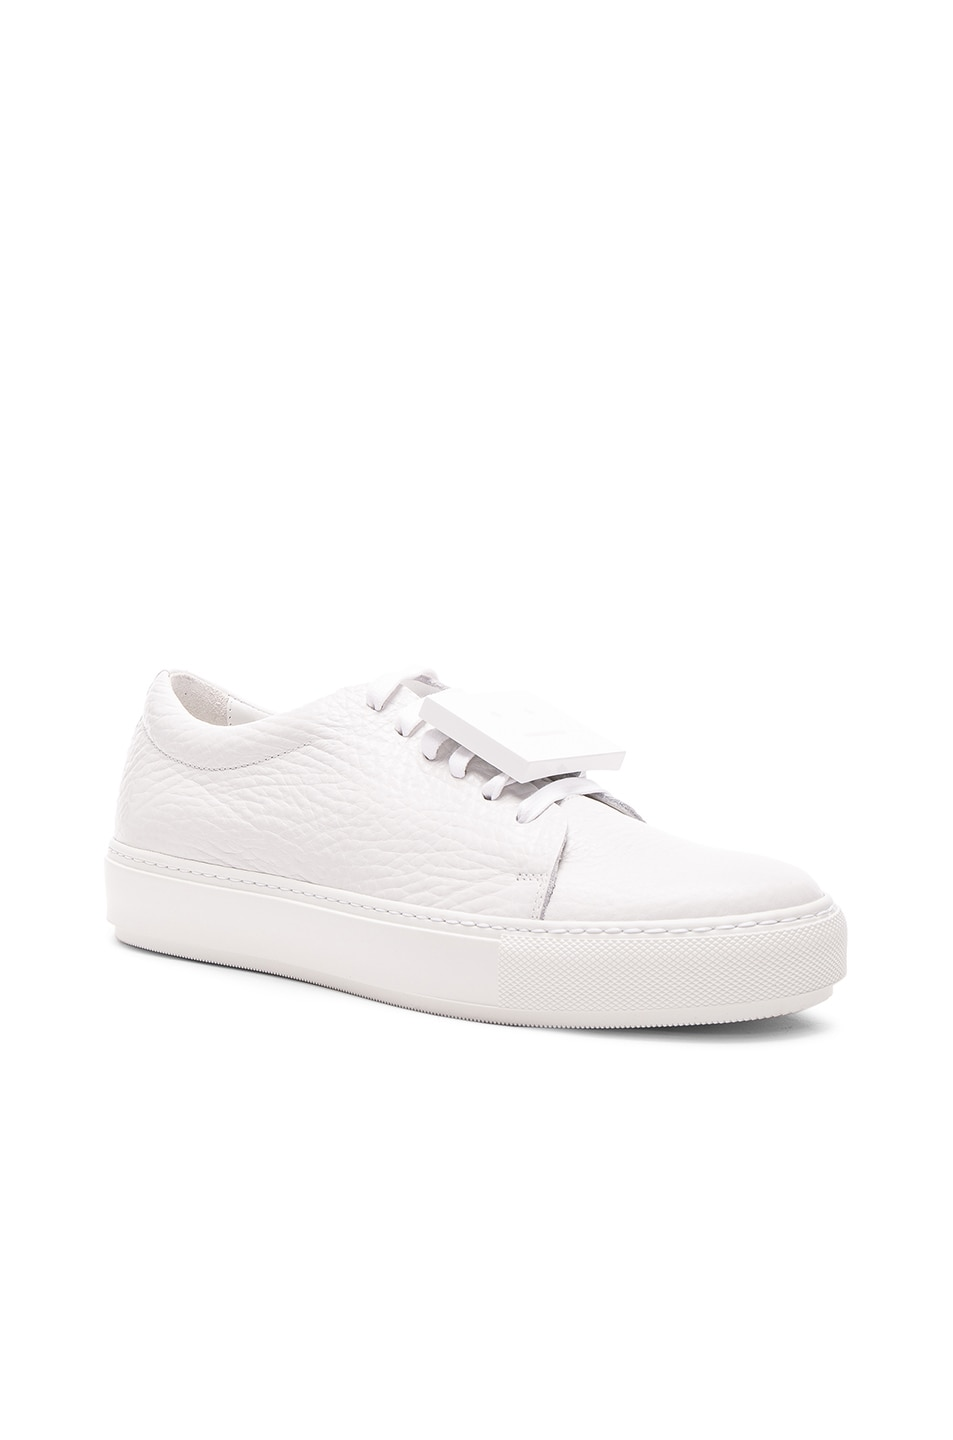 Image 2 of Acne Studios Leather Adriana Sneakers in White